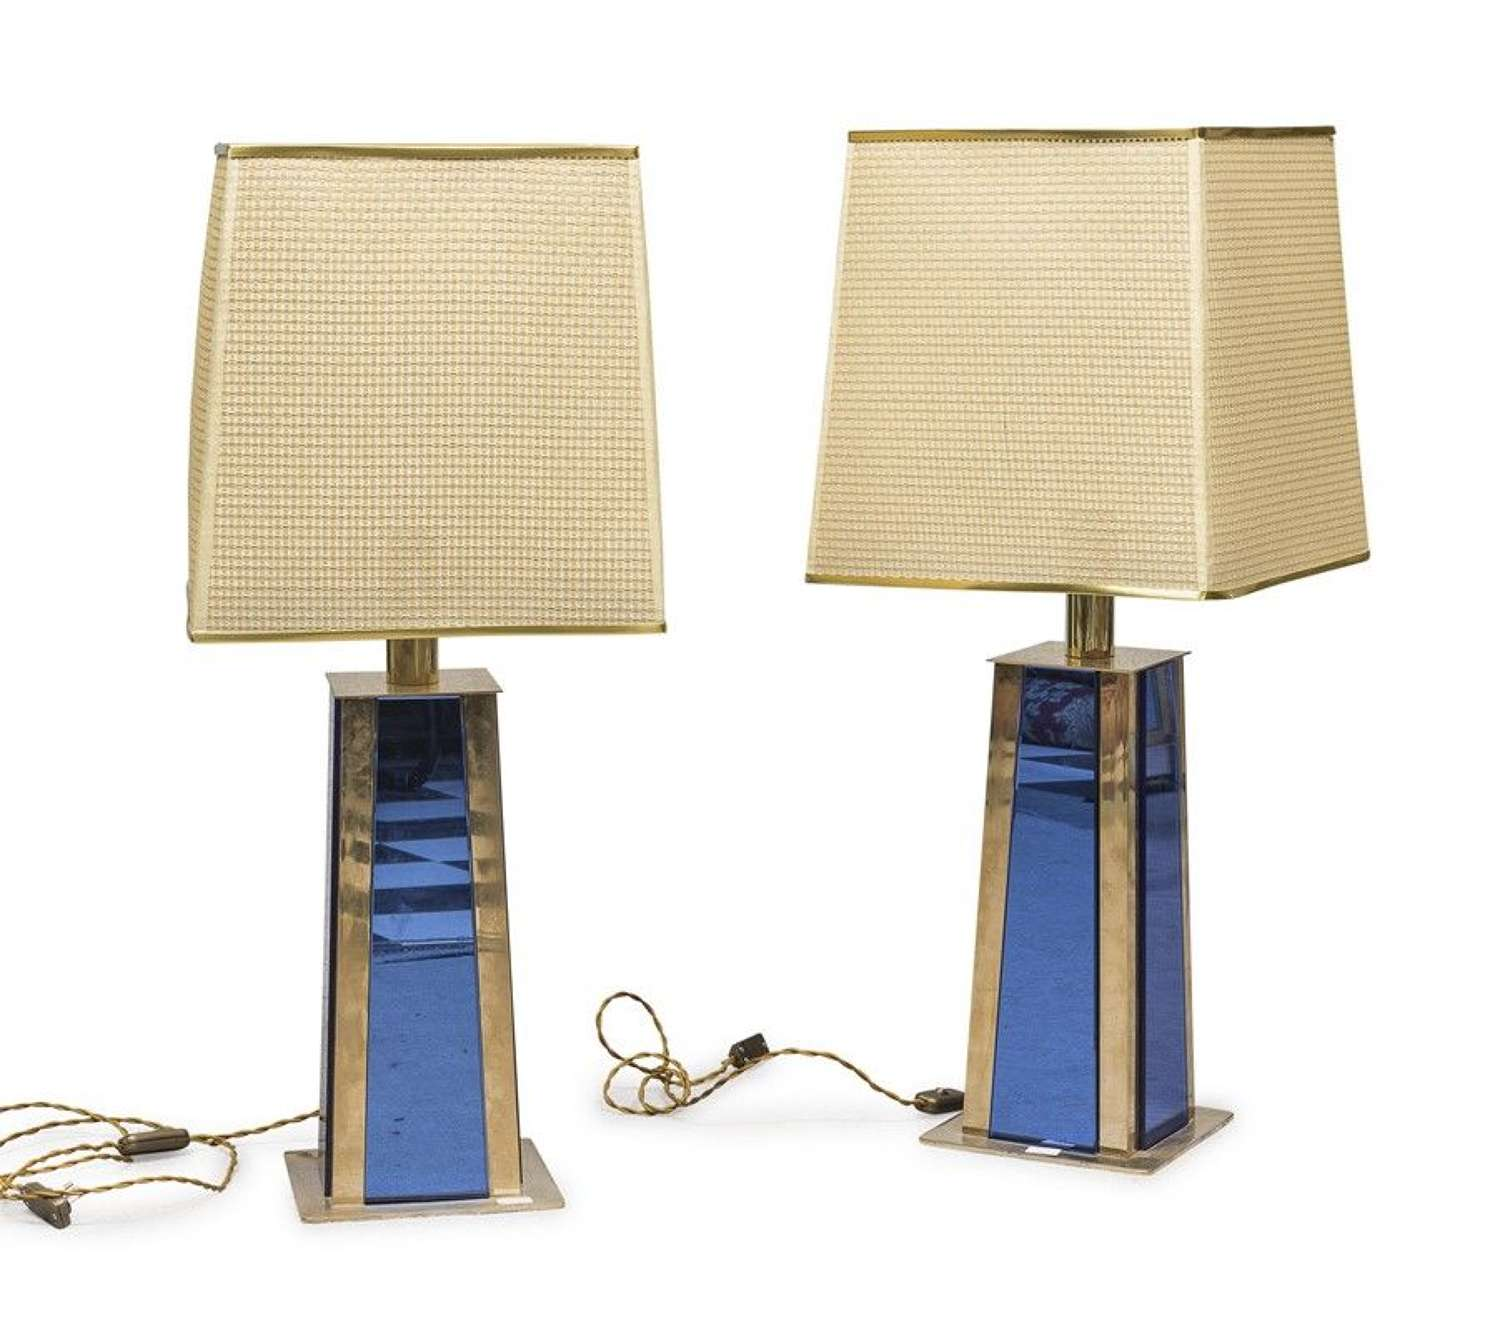 Pair of Janetti mirrored table lamps